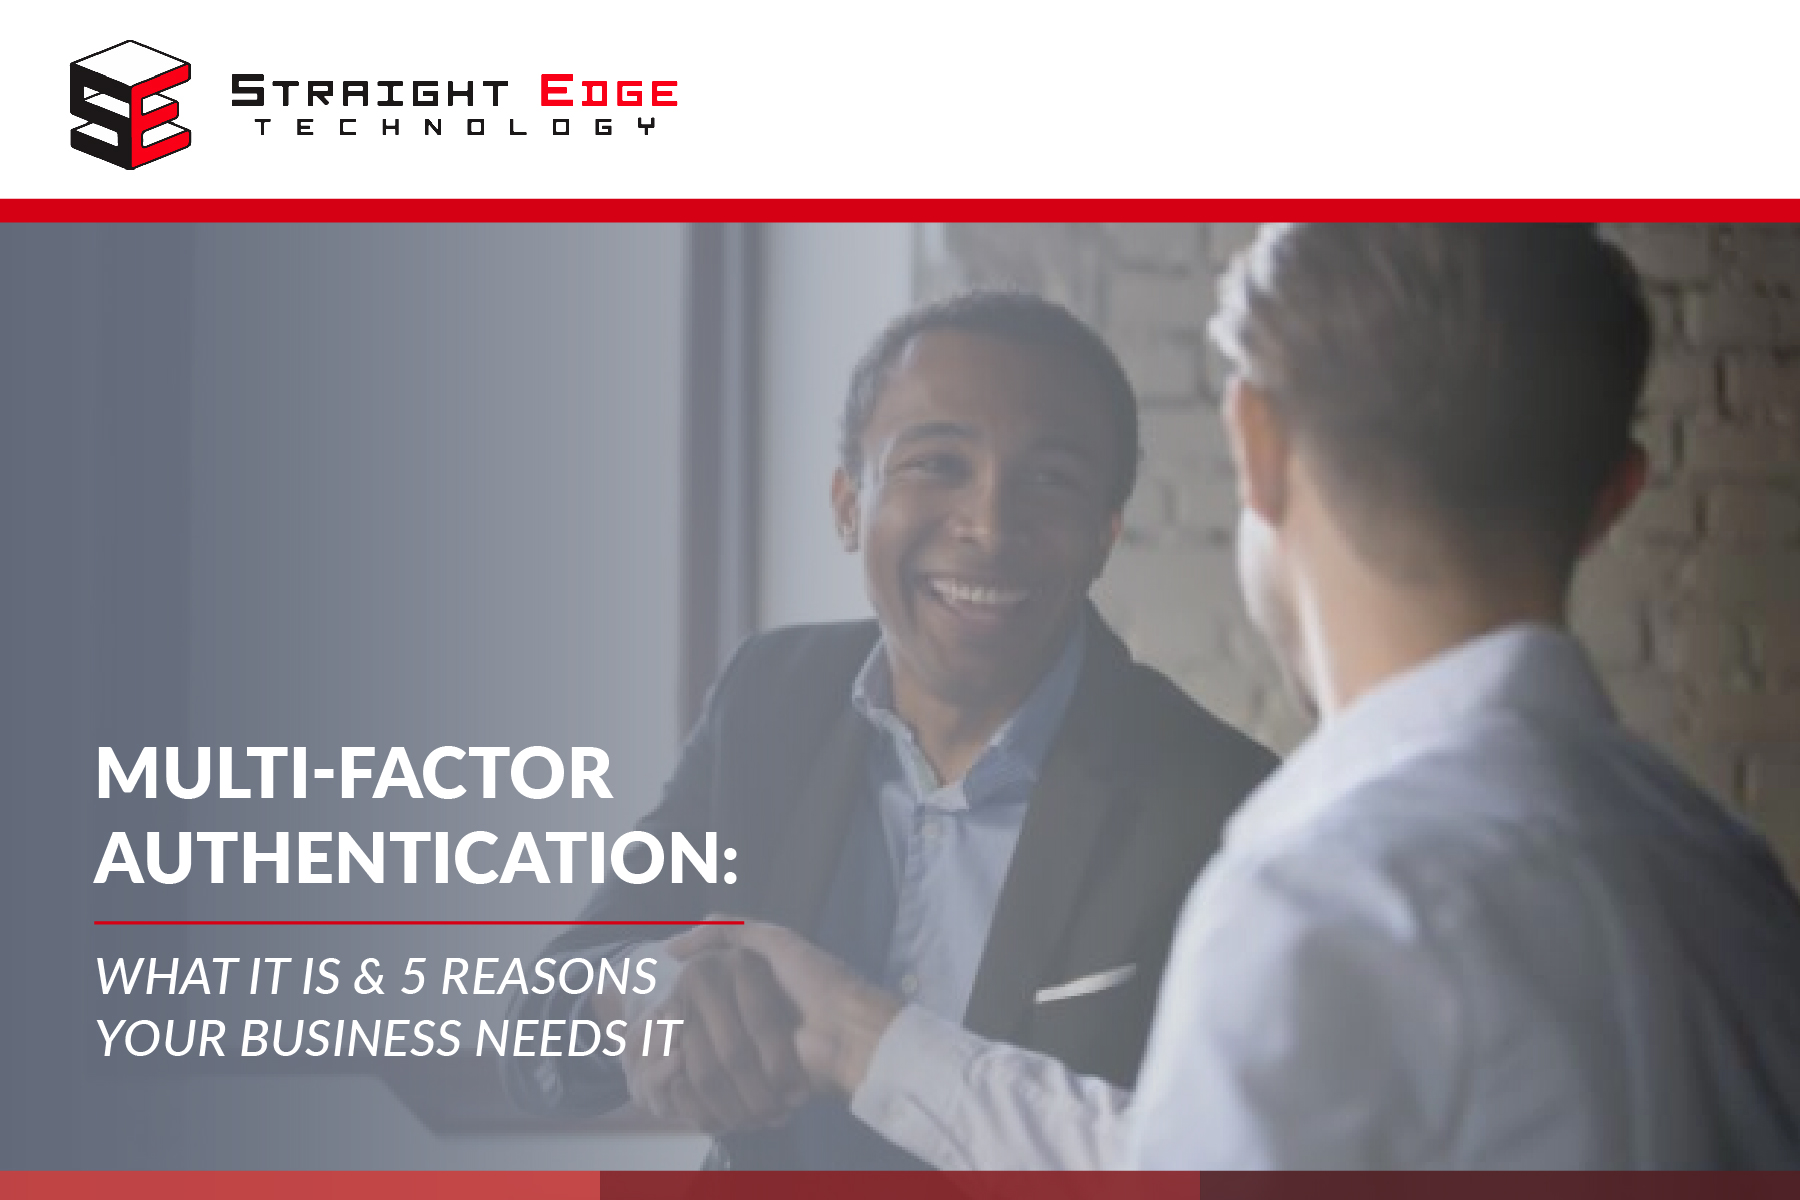 Multi-Factor Authentication: What it is & 5 reasons your business needs it 1